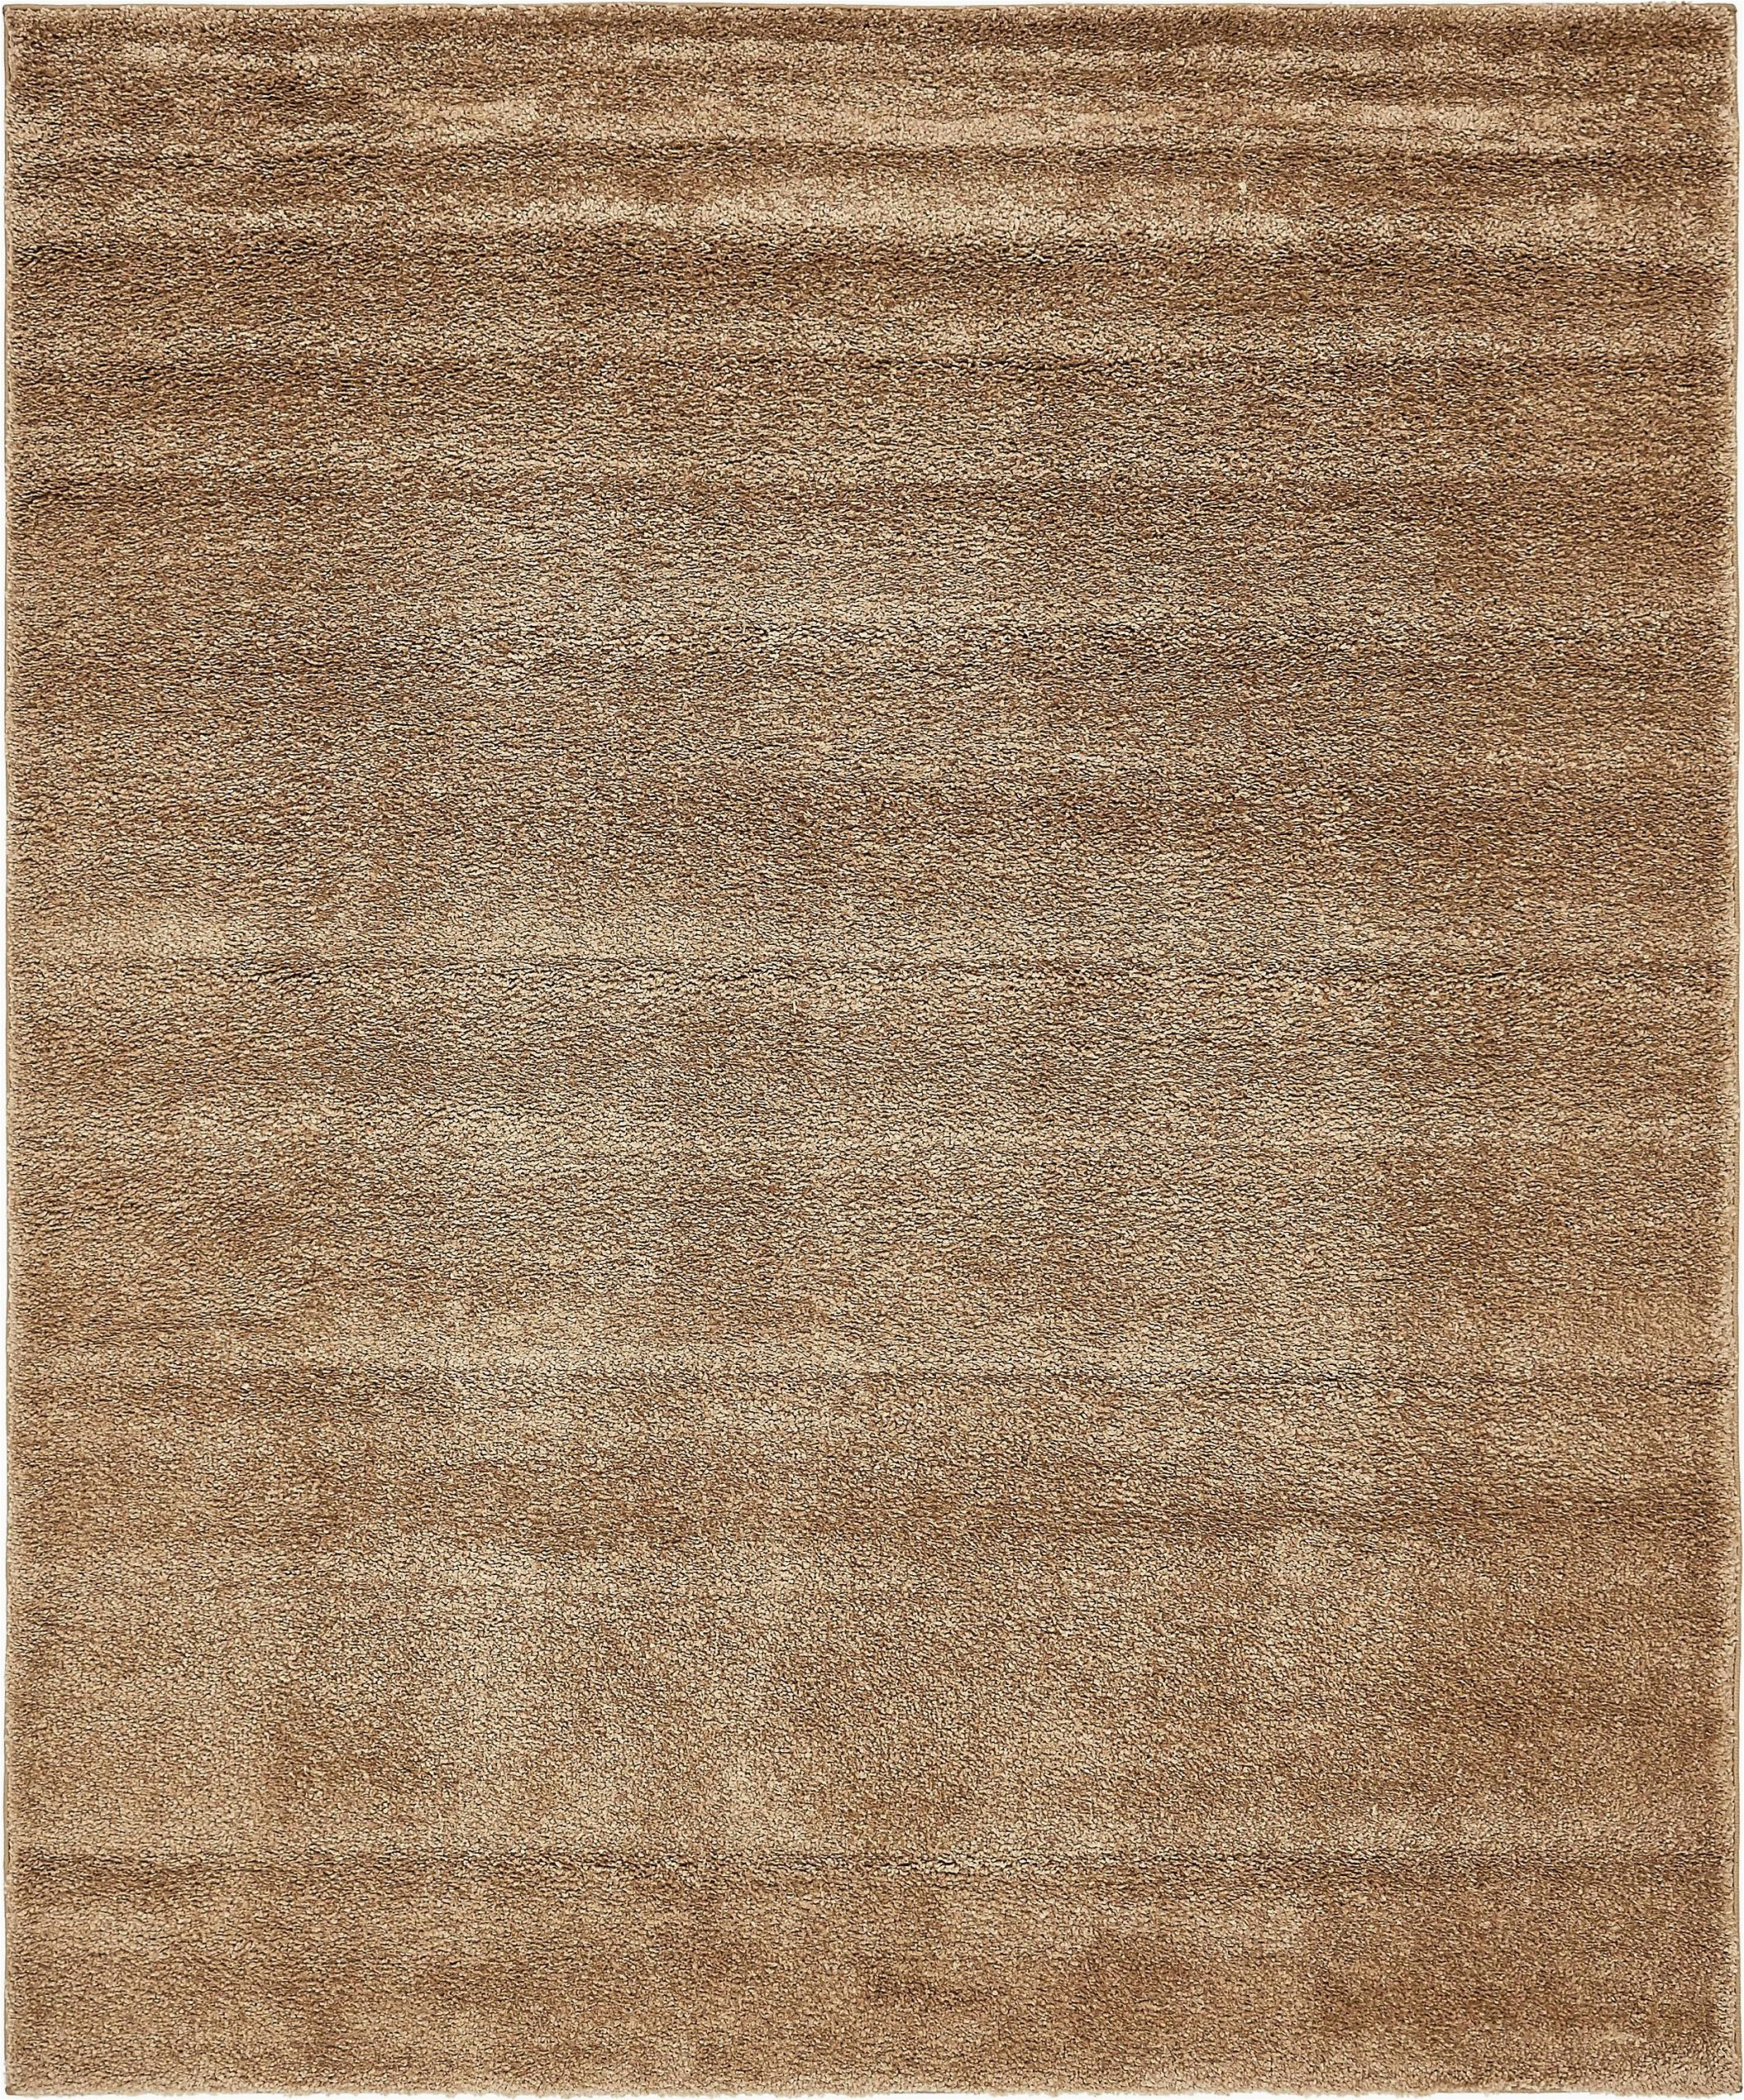 Light Brown area Rug 8×10 Light Brown 8 X 10 solid Frieze Rug Spon Brown